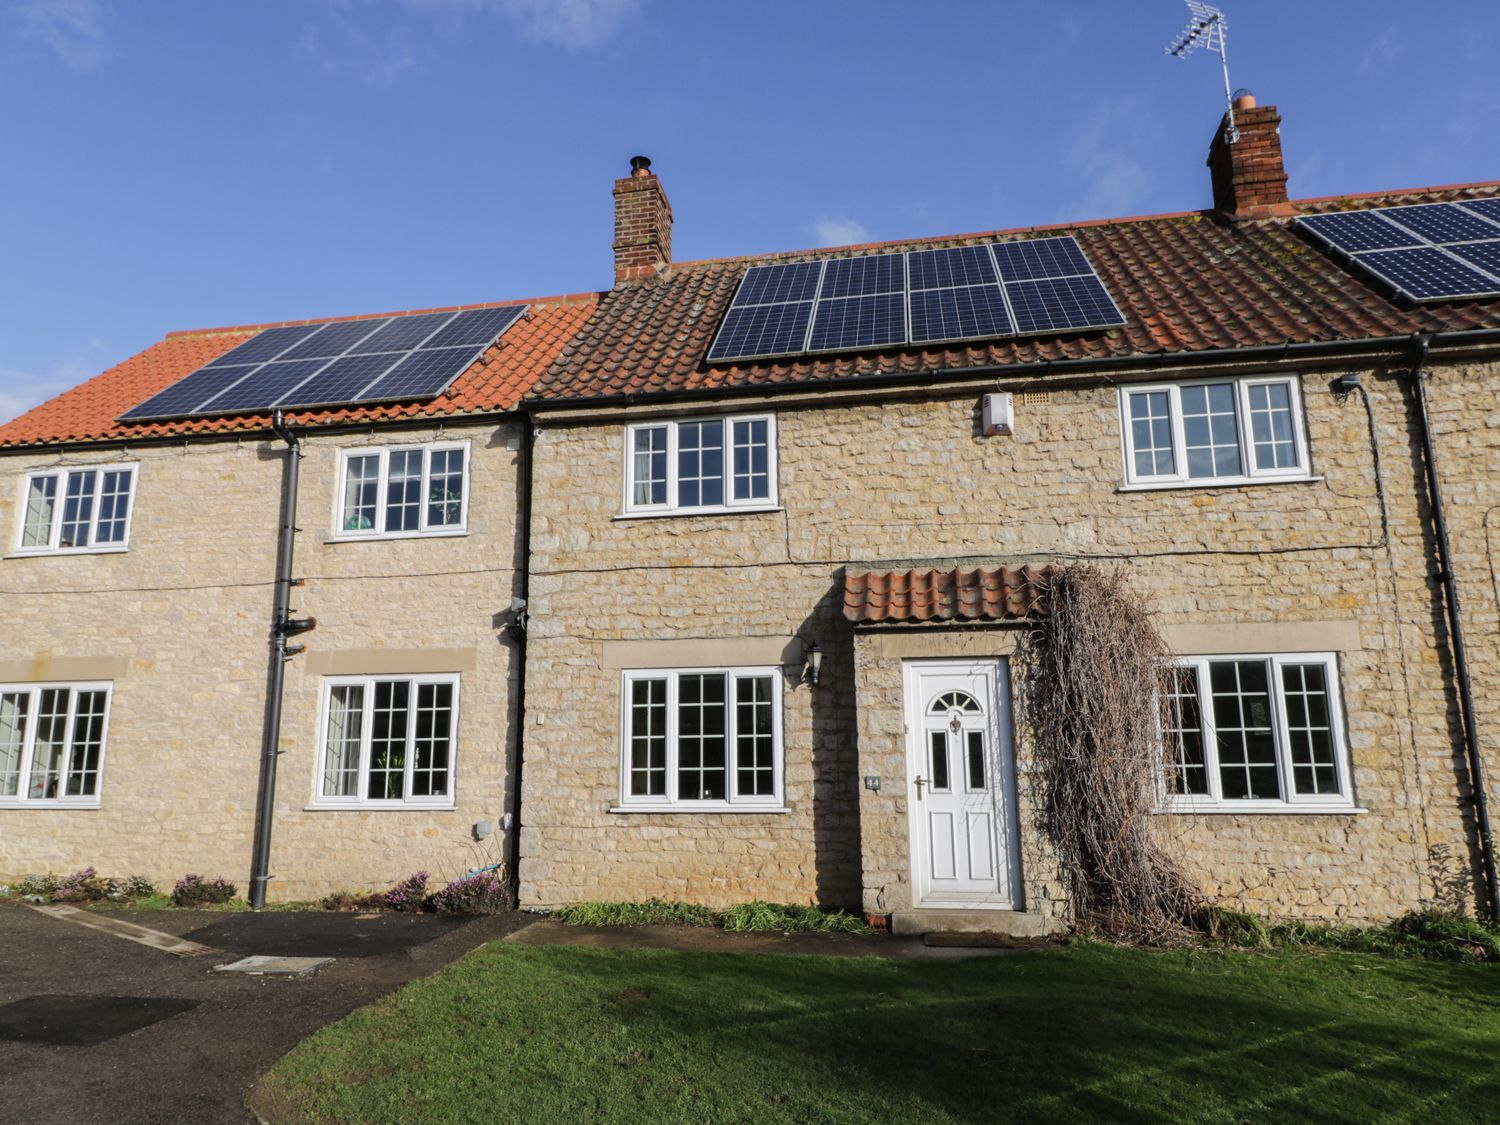 44 Elmslac Road - Whitby & North Yorkshire - 971251 - photo 1